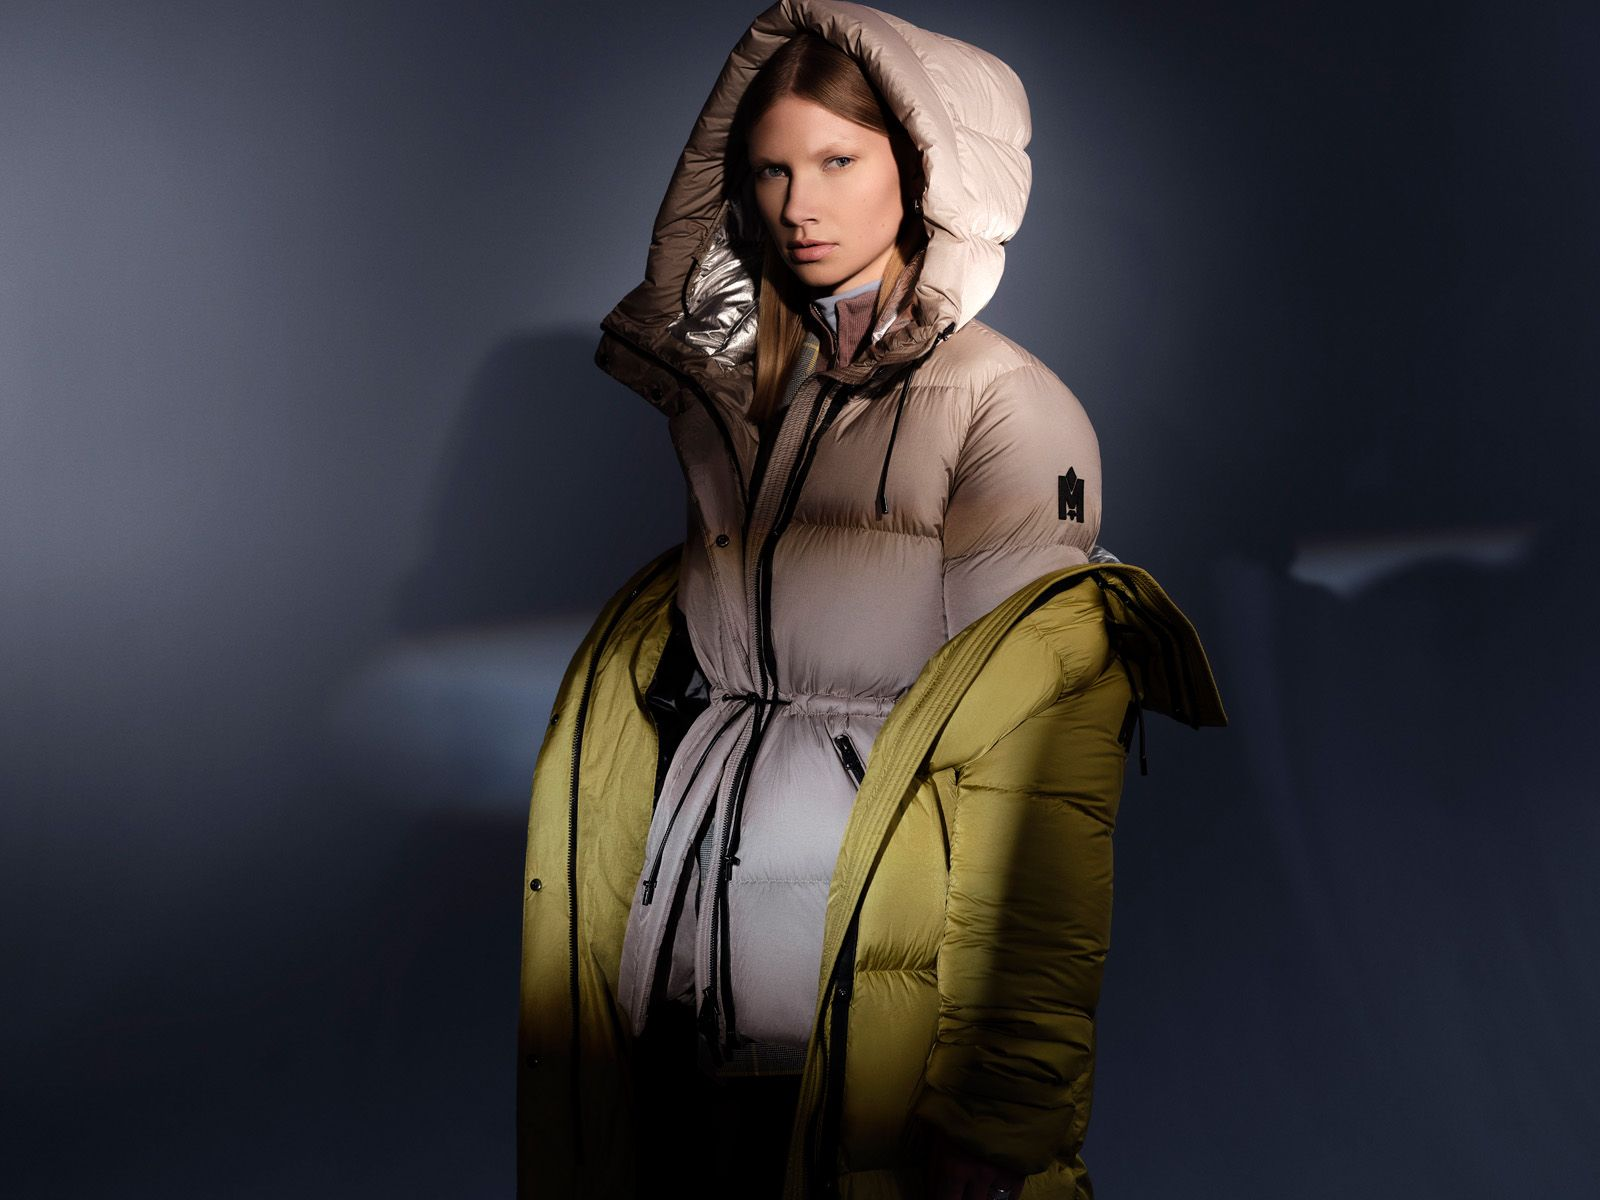 blonde model wearing beige winter coat with hood on and yellow winter coat on her arms on dark background looking at camera styled by Studio TB and photographed by Maxyme G. Delisle for Mackage